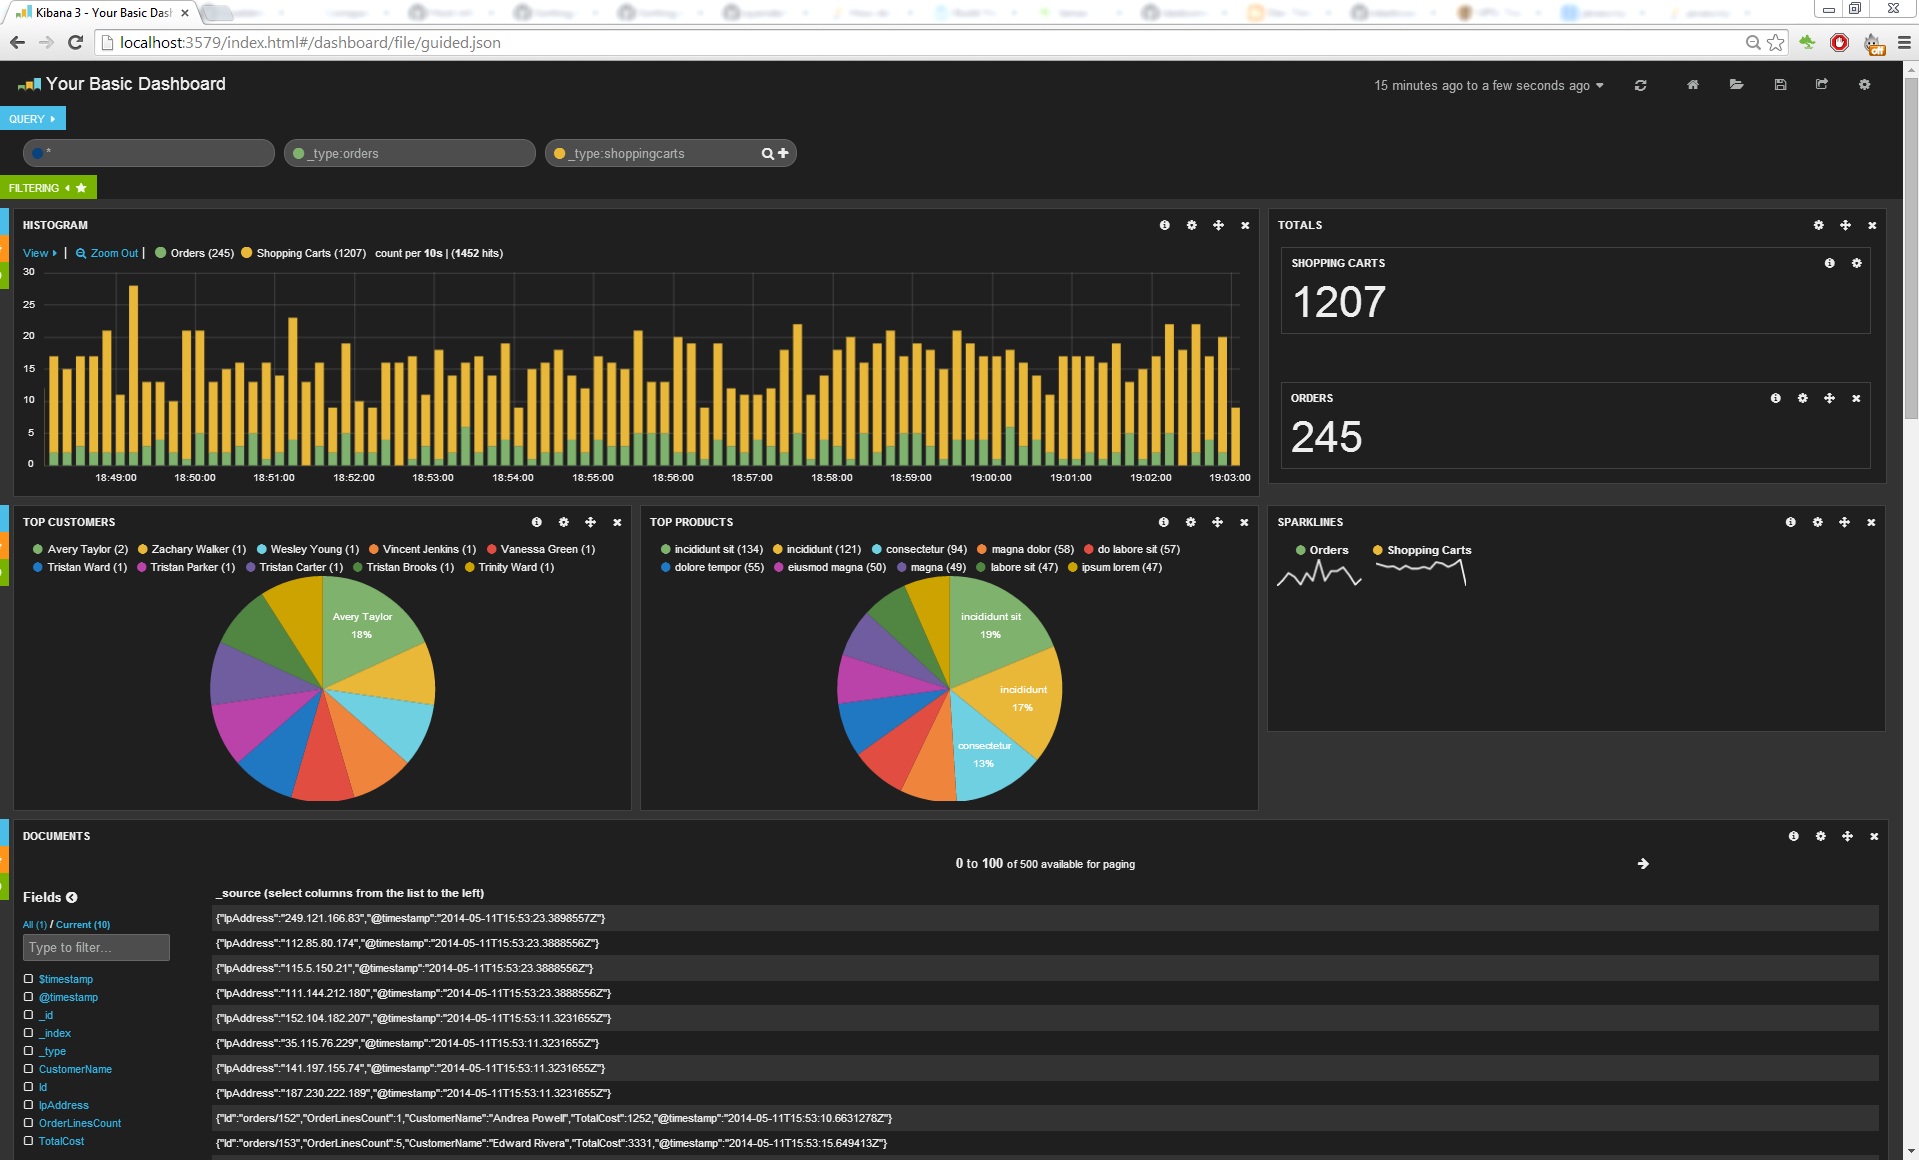 Demo Kibana Dashboard